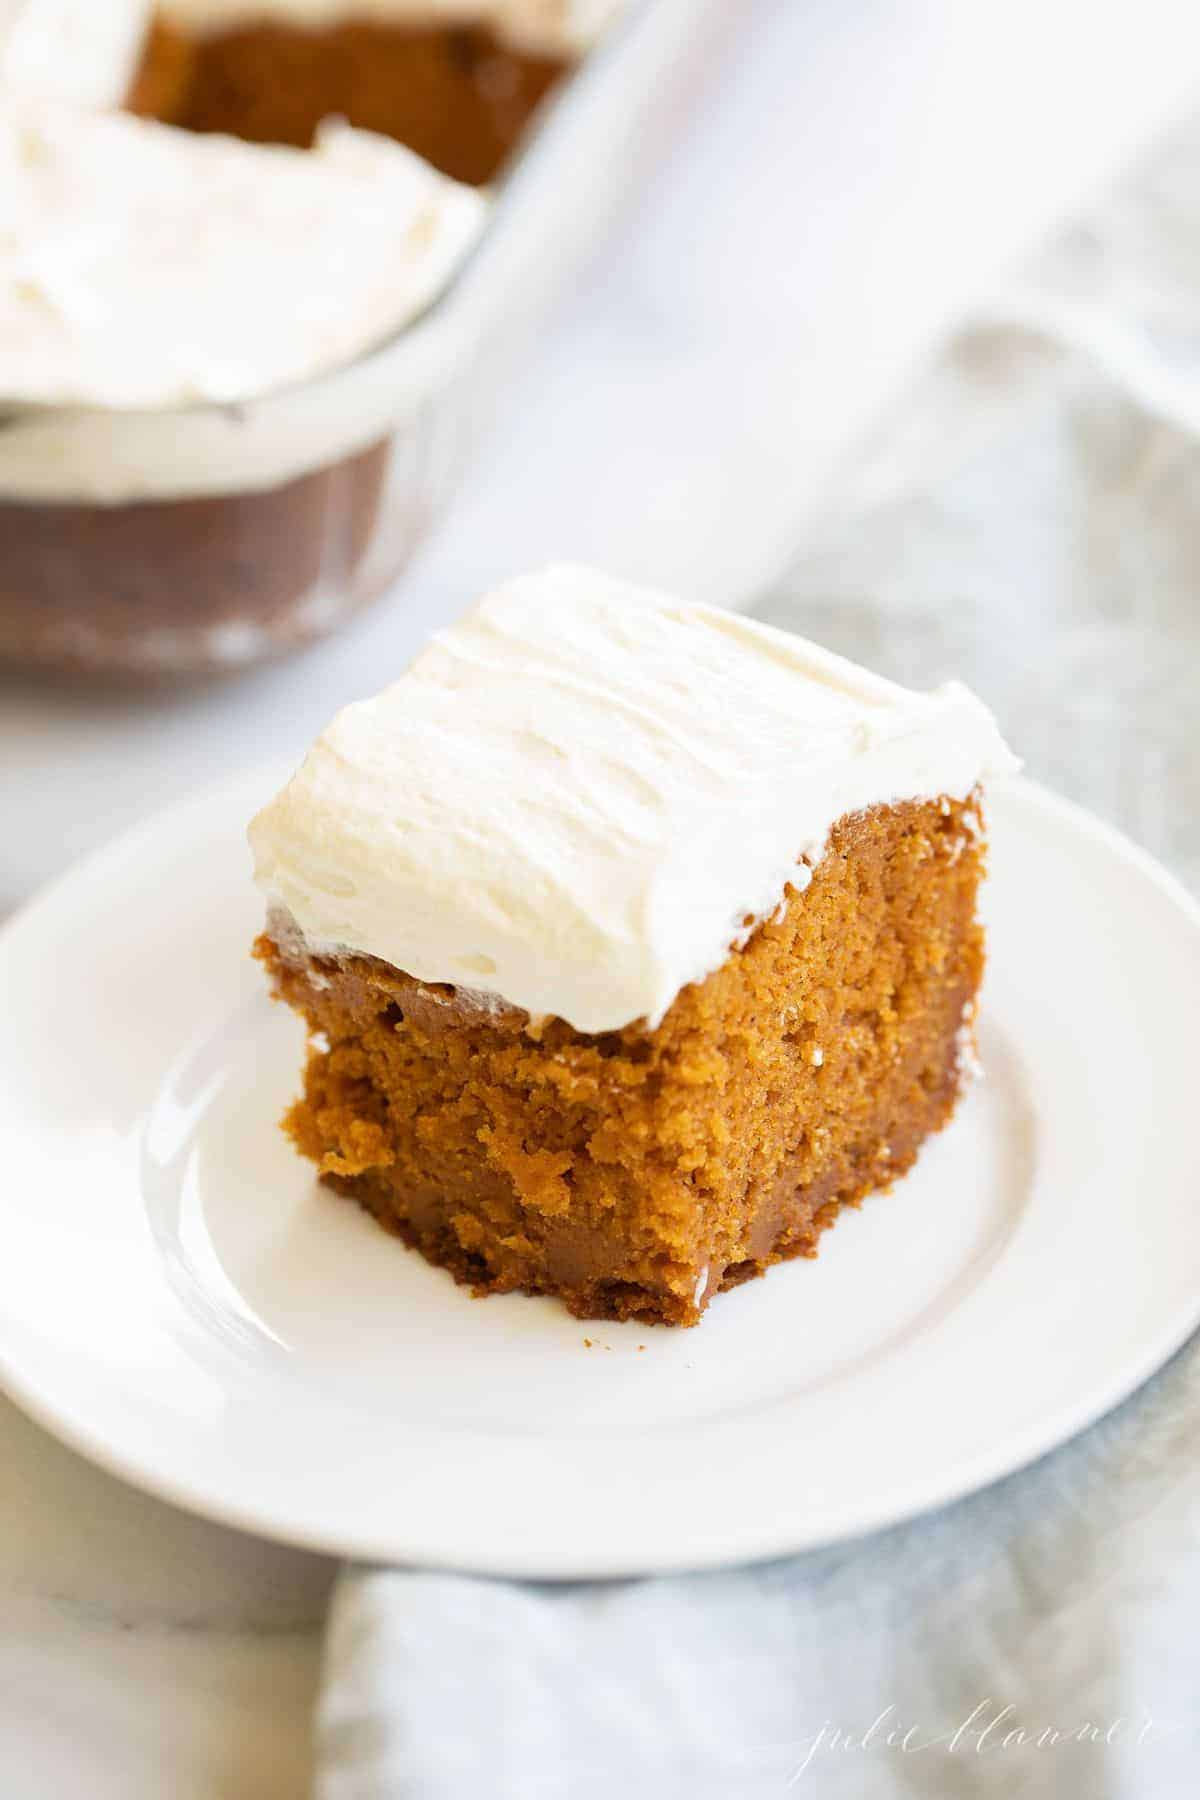 A slice of pumpkin cake on a white plate.